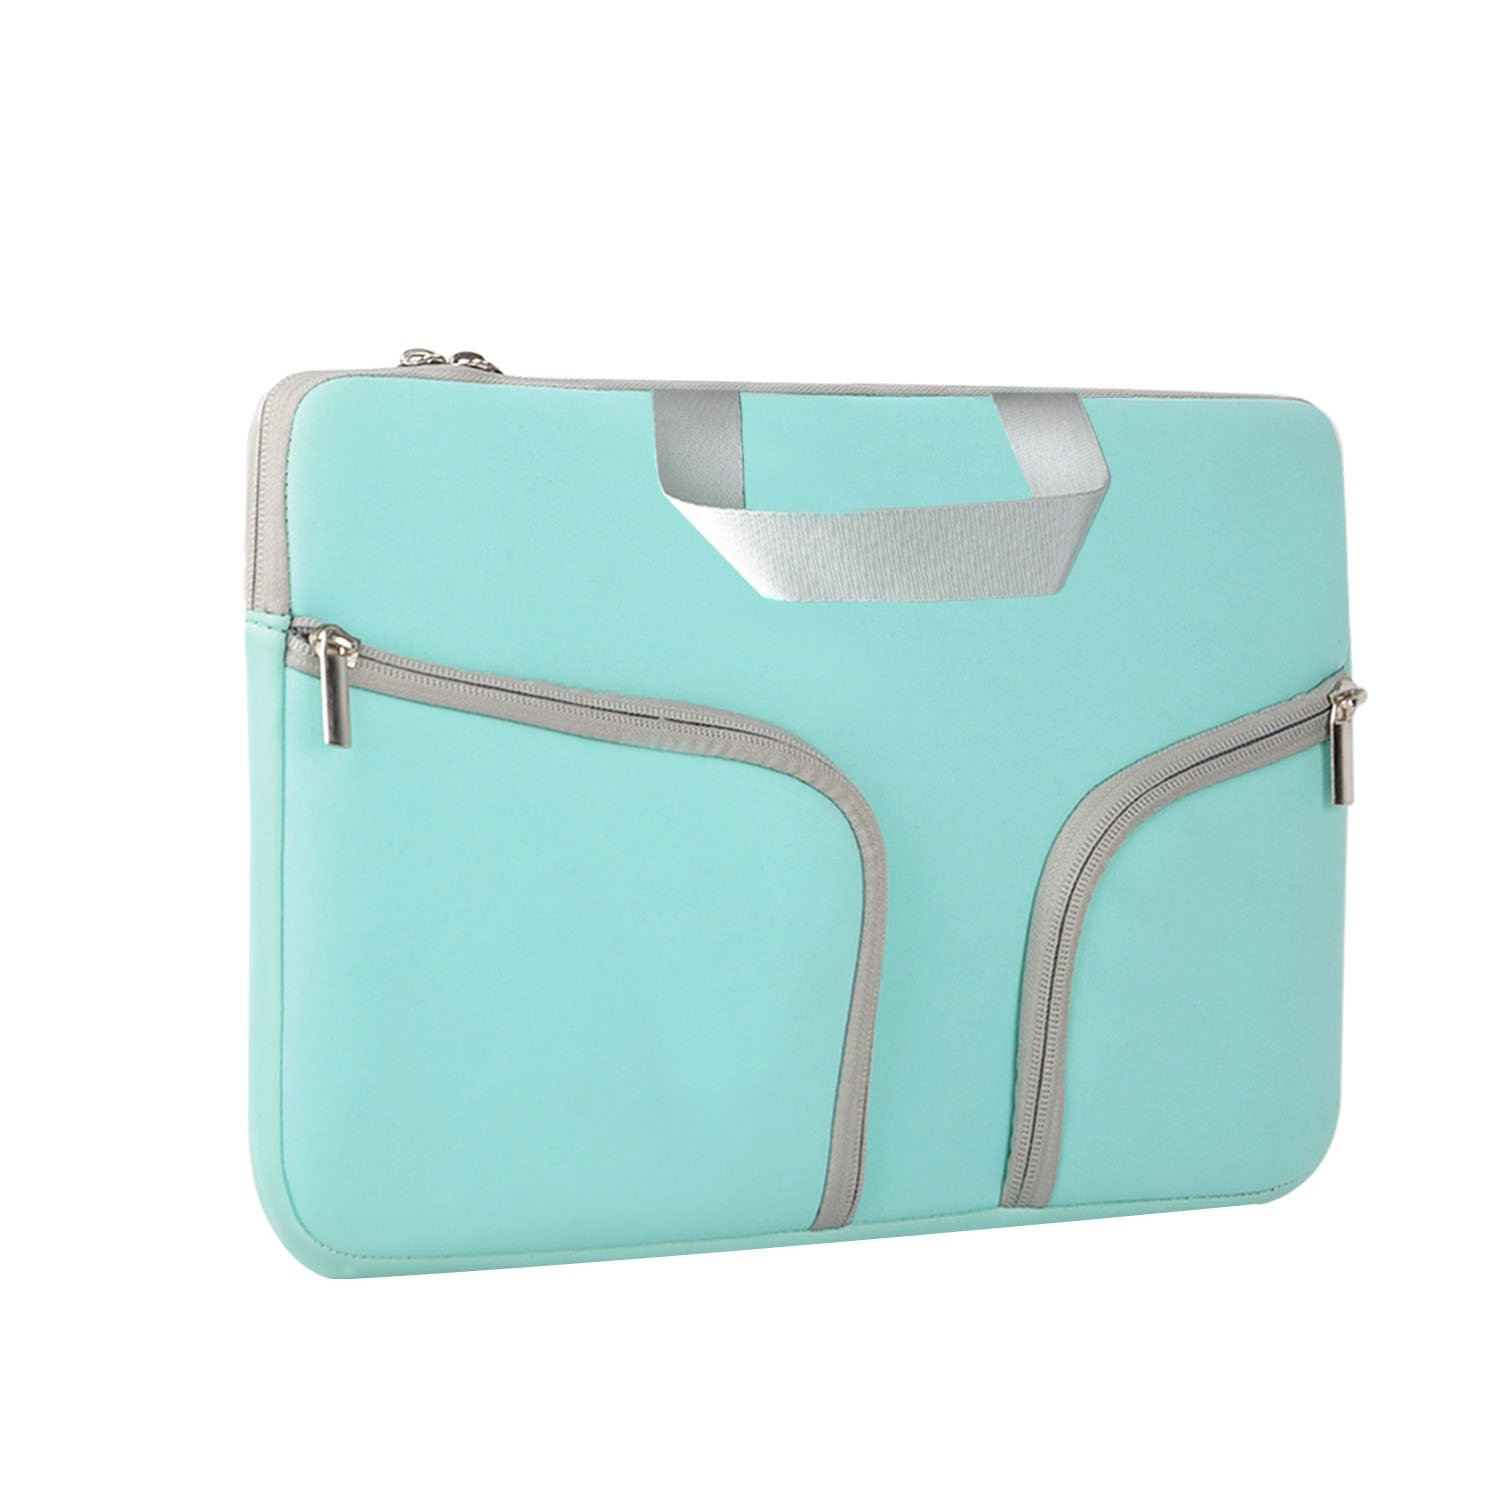 HESTECH Chromebook Case, 11.6-12.3 inch Neoprene Laptop Sleeve Case Bag Handle Compatible with Acer Chromebook r11/HP Stream/Samsung Chromebook/MacBook air 11/, Mint Green by HESTECH (Image #1)